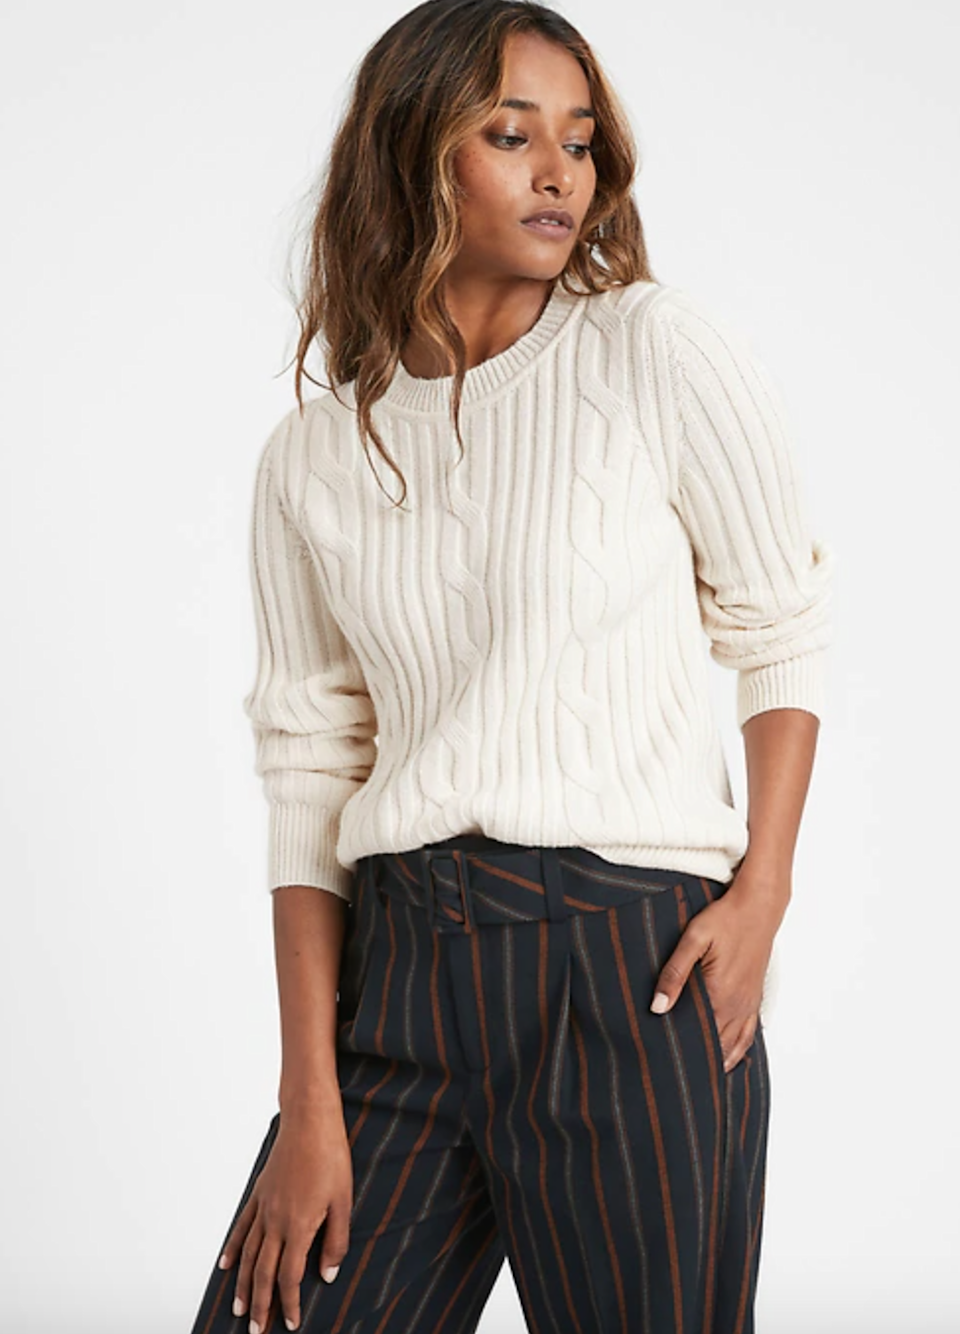 """<br><br><strong>Banana Republic</strong> Chunky Cable-Knit Sweater, $, available at <a href=""""https://go.skimresources.com/?id=30283X879131&url=https%3A%2F%2Fbananarepublic.gap.com%2Fbrowse%2Fproduct.do%3Fpid%3D656664062%26cid%3D1170054%26pcid%3D1169671"""" rel=""""nofollow noopener"""" target=""""_blank"""" data-ylk=""""slk:Banana Republic"""" class=""""link rapid-noclick-resp"""">Banana Republic</a>"""